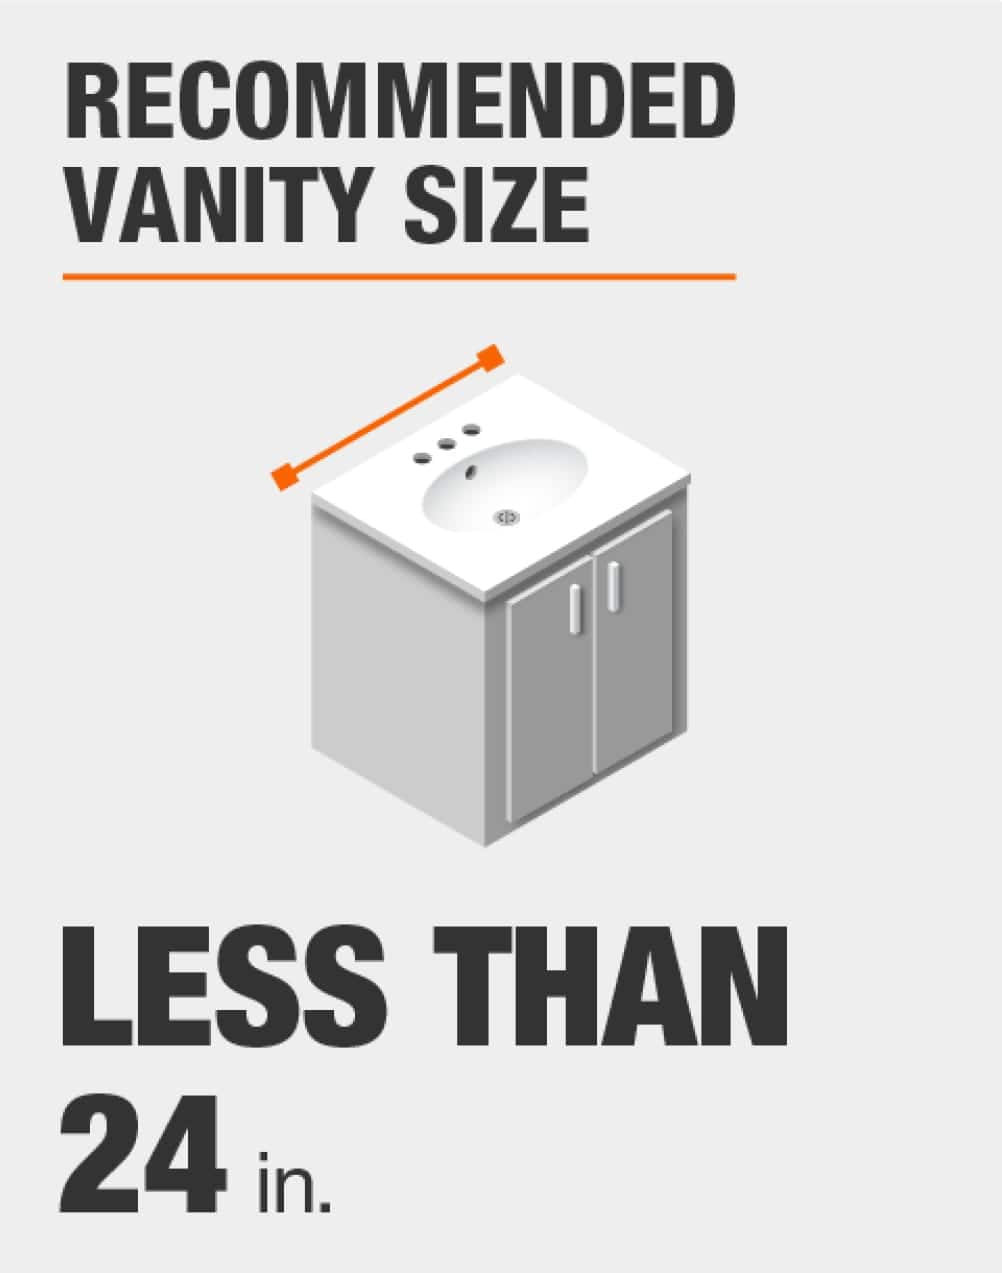 recommended vanity size is less than 24 inches wide